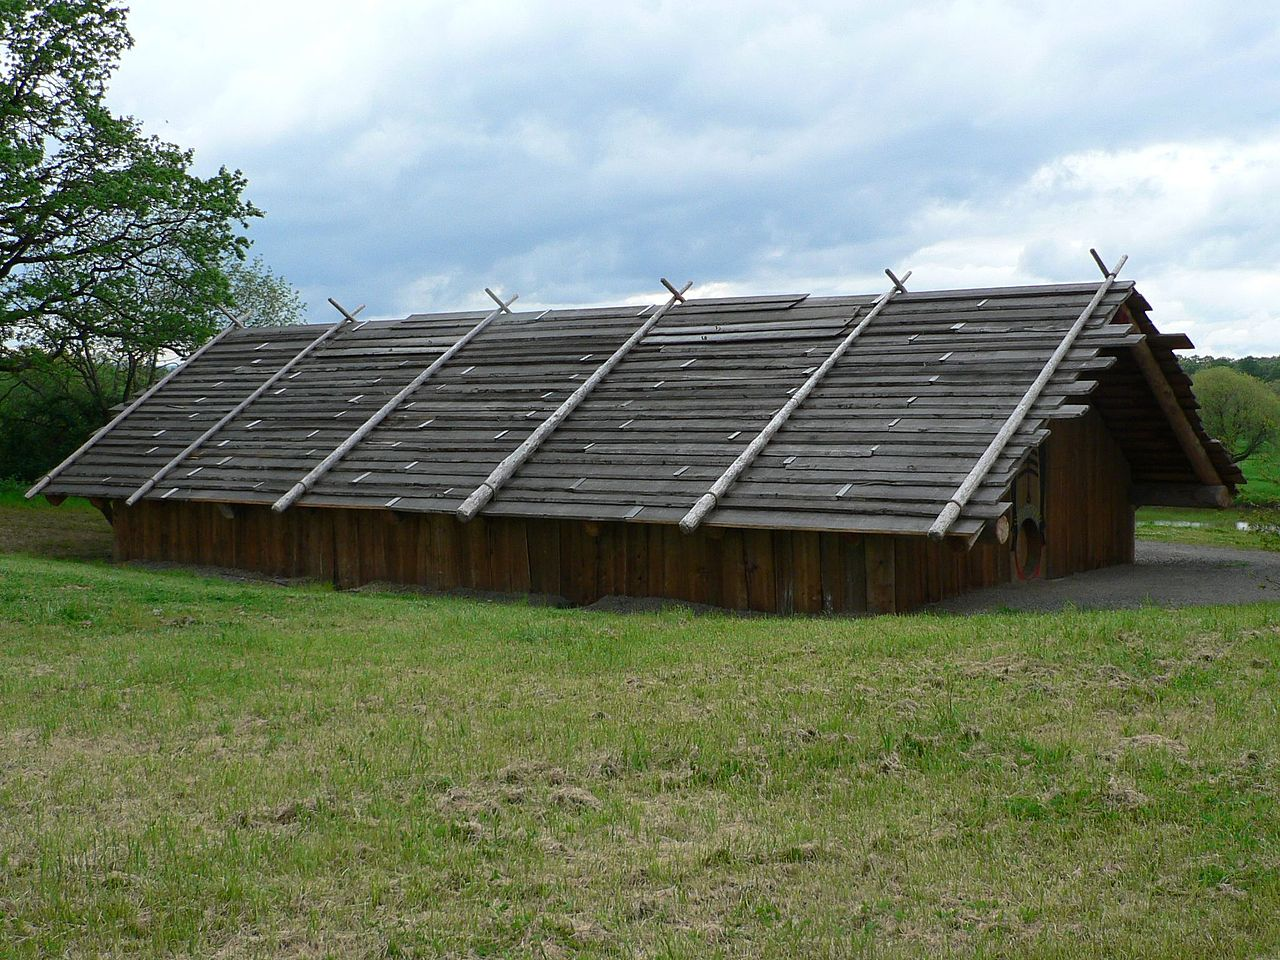 photo: Cathlapotle Plankhouse (a 2005 full-scale replica of a Chinookan-style cedar plankhouse). Photo by Walter Siegmund.